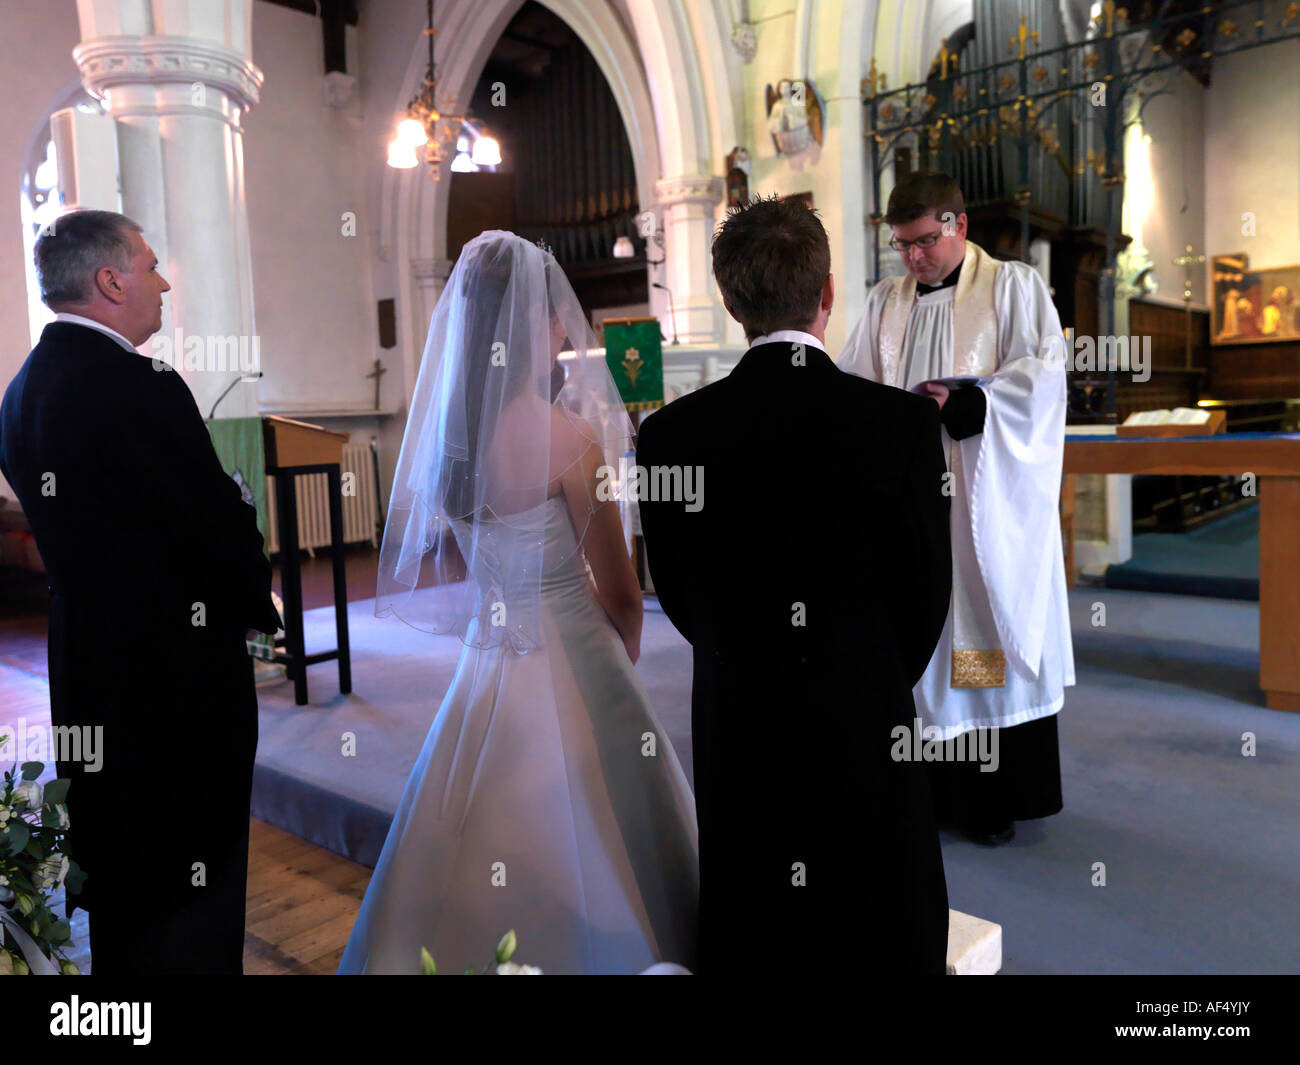 Bride Being Given Away by her Father Wedding Surrey Engalnd - Stock Image